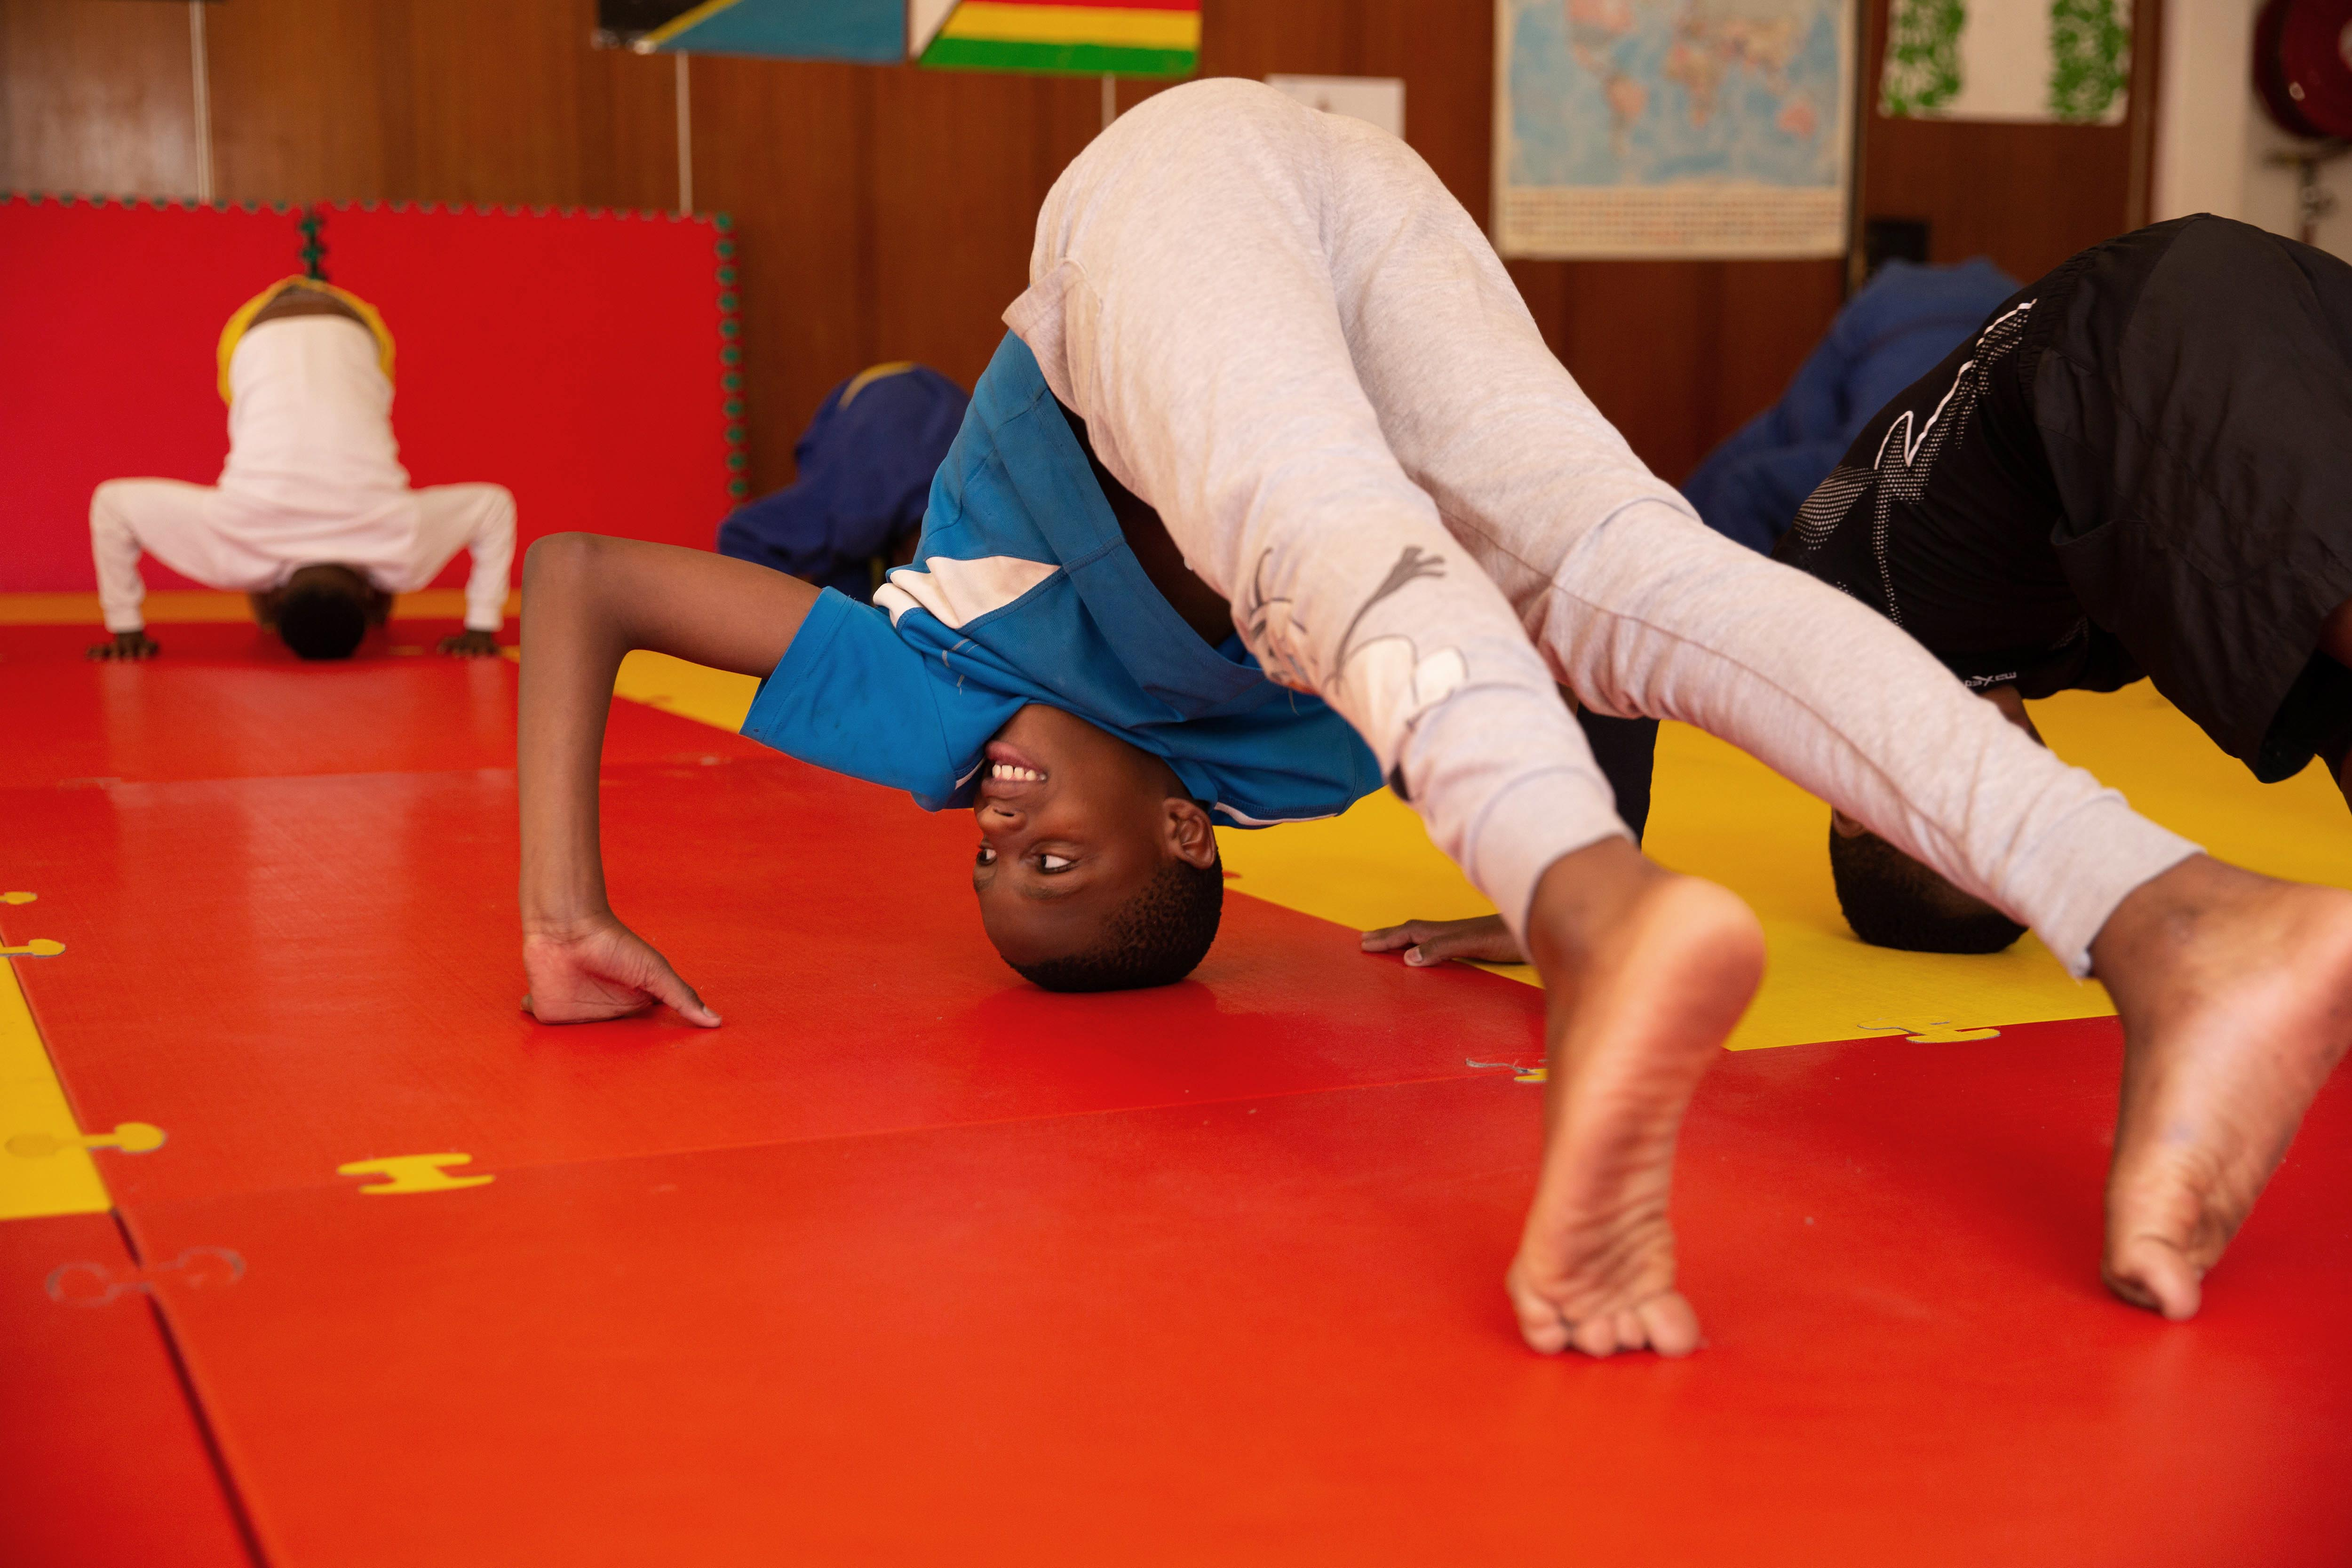 14 November 2019: Junior Tshabalala, 12, takes part in his first judo class.